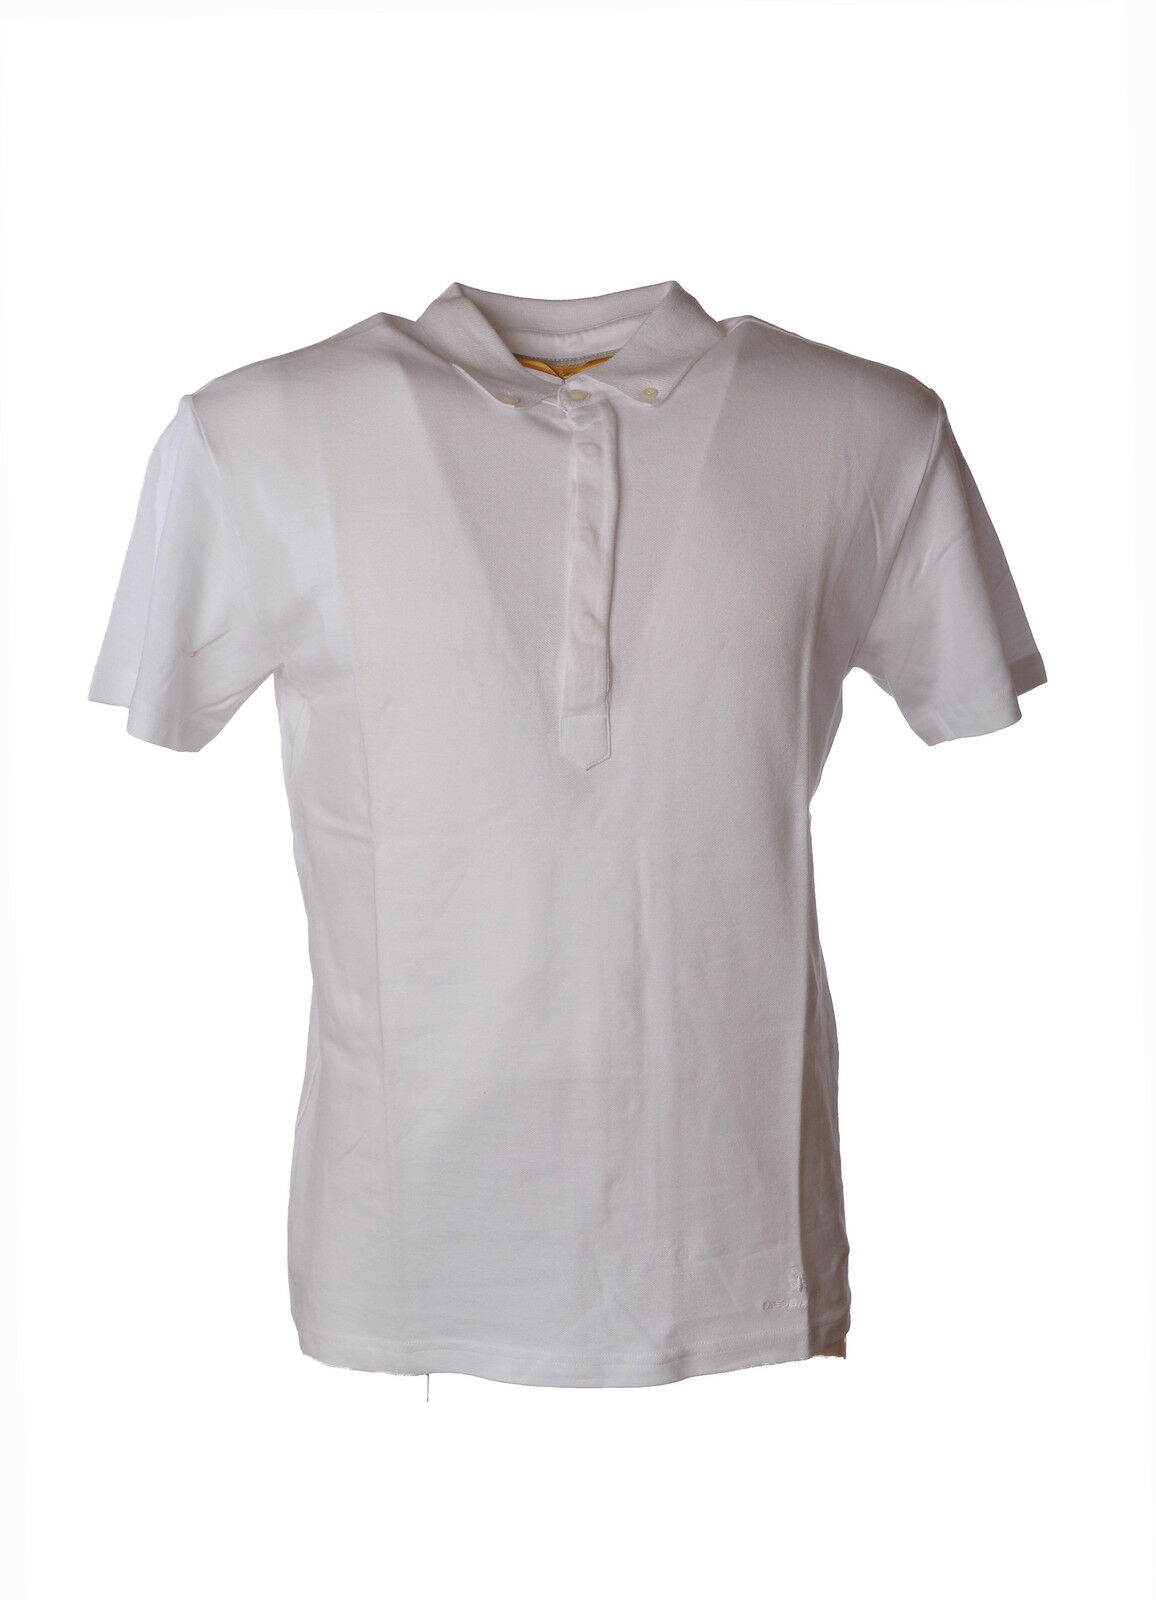 Messagerie  -  Polo - Male - White - 3536623A181107